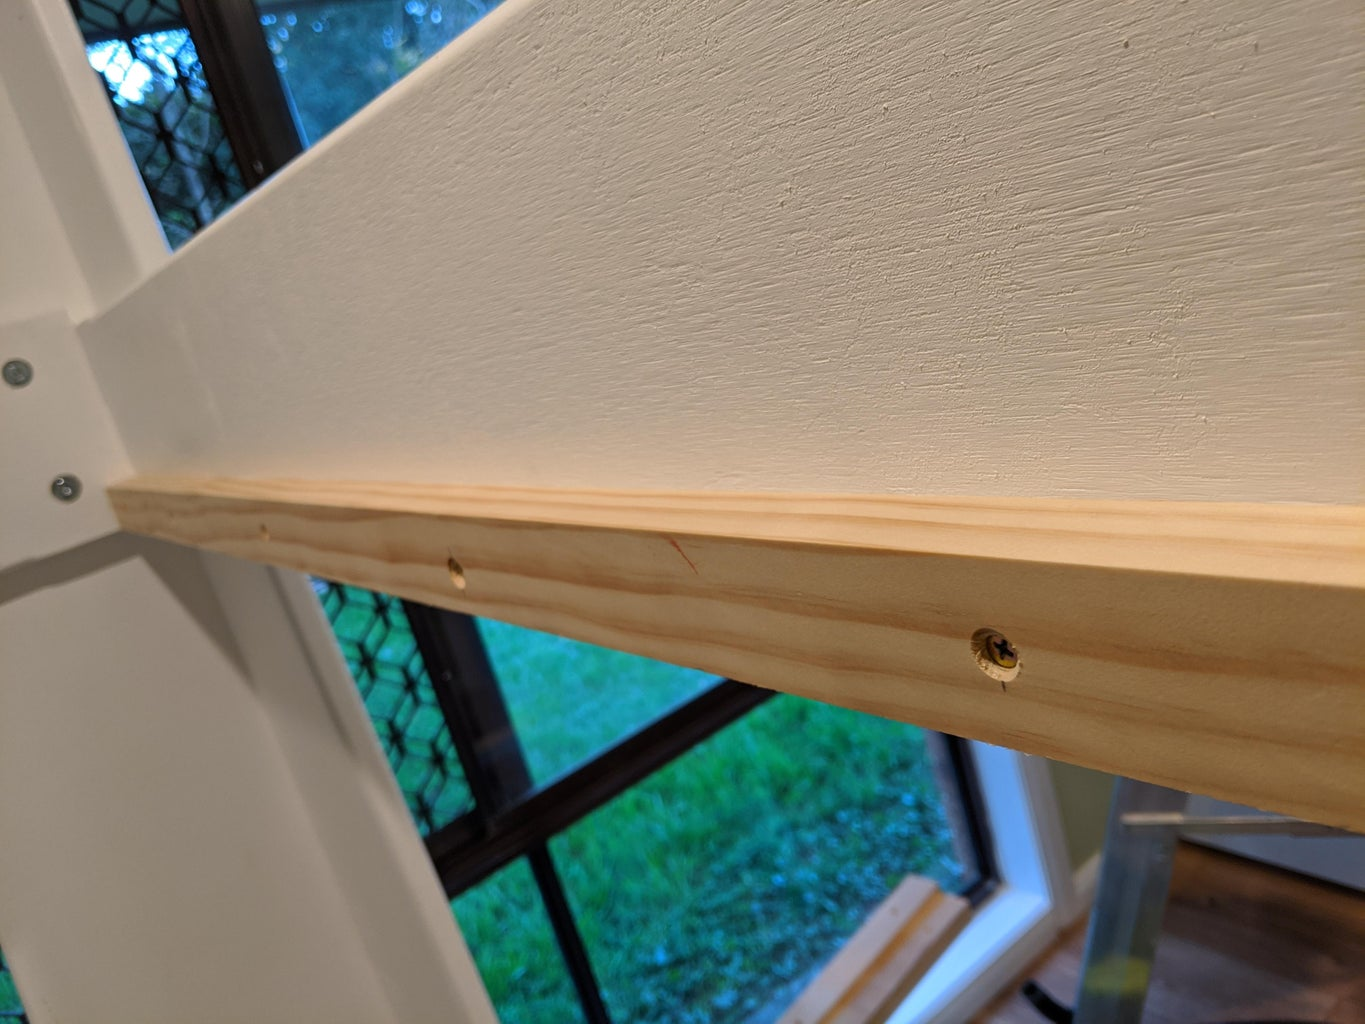 Rip Down Your Final Sheet of Plywood to Make Ladder and Pillow Rails